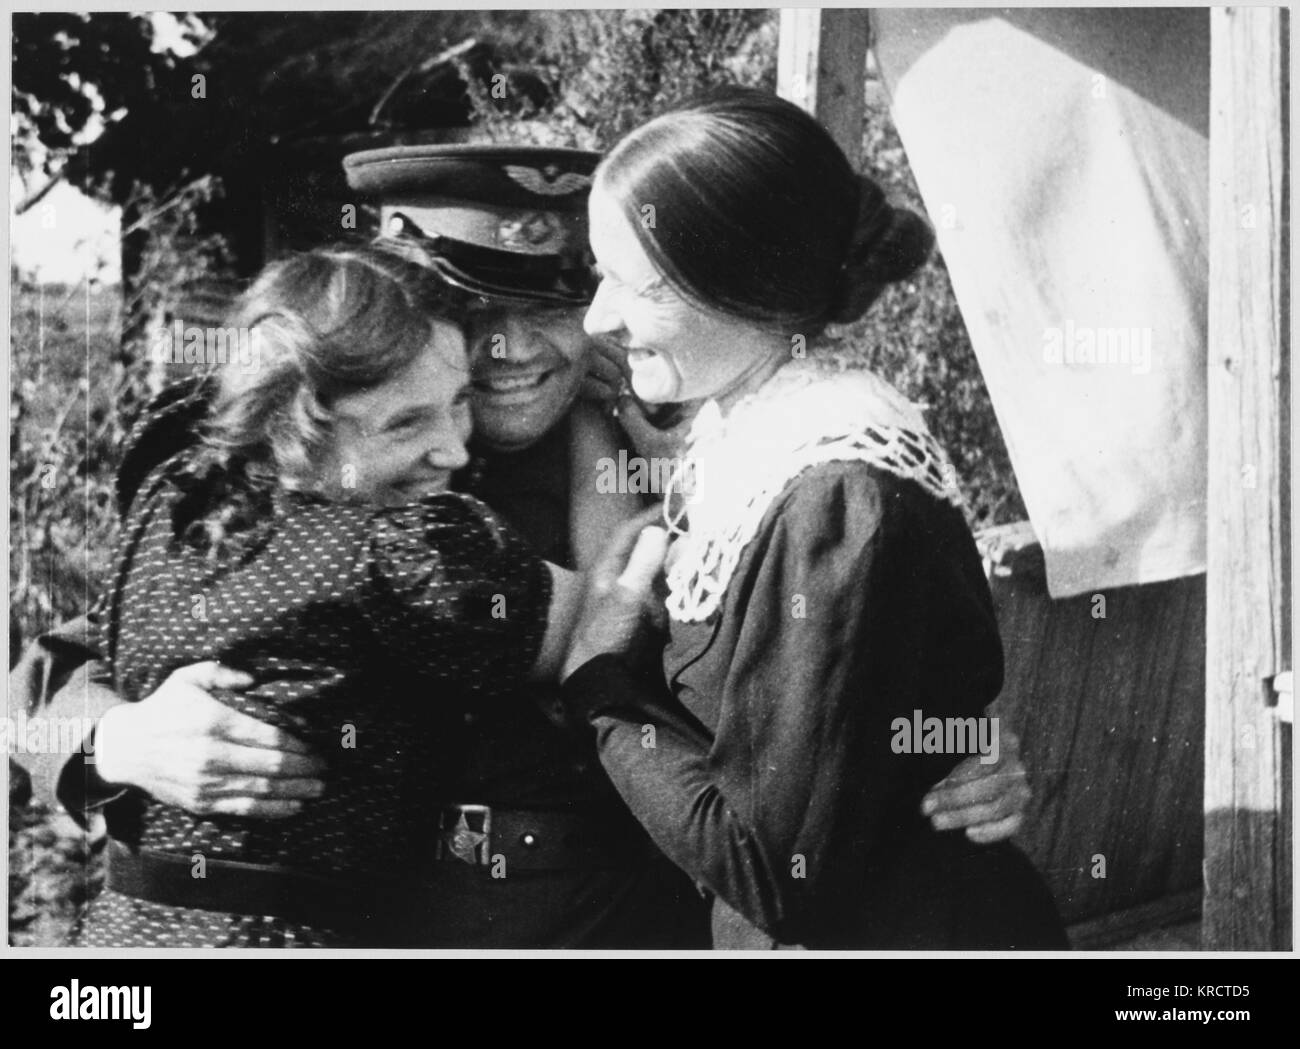 LIBERATION SCENES A Soviet soldier is greeted in a liberated village. Date: August 1943 - Stock Image